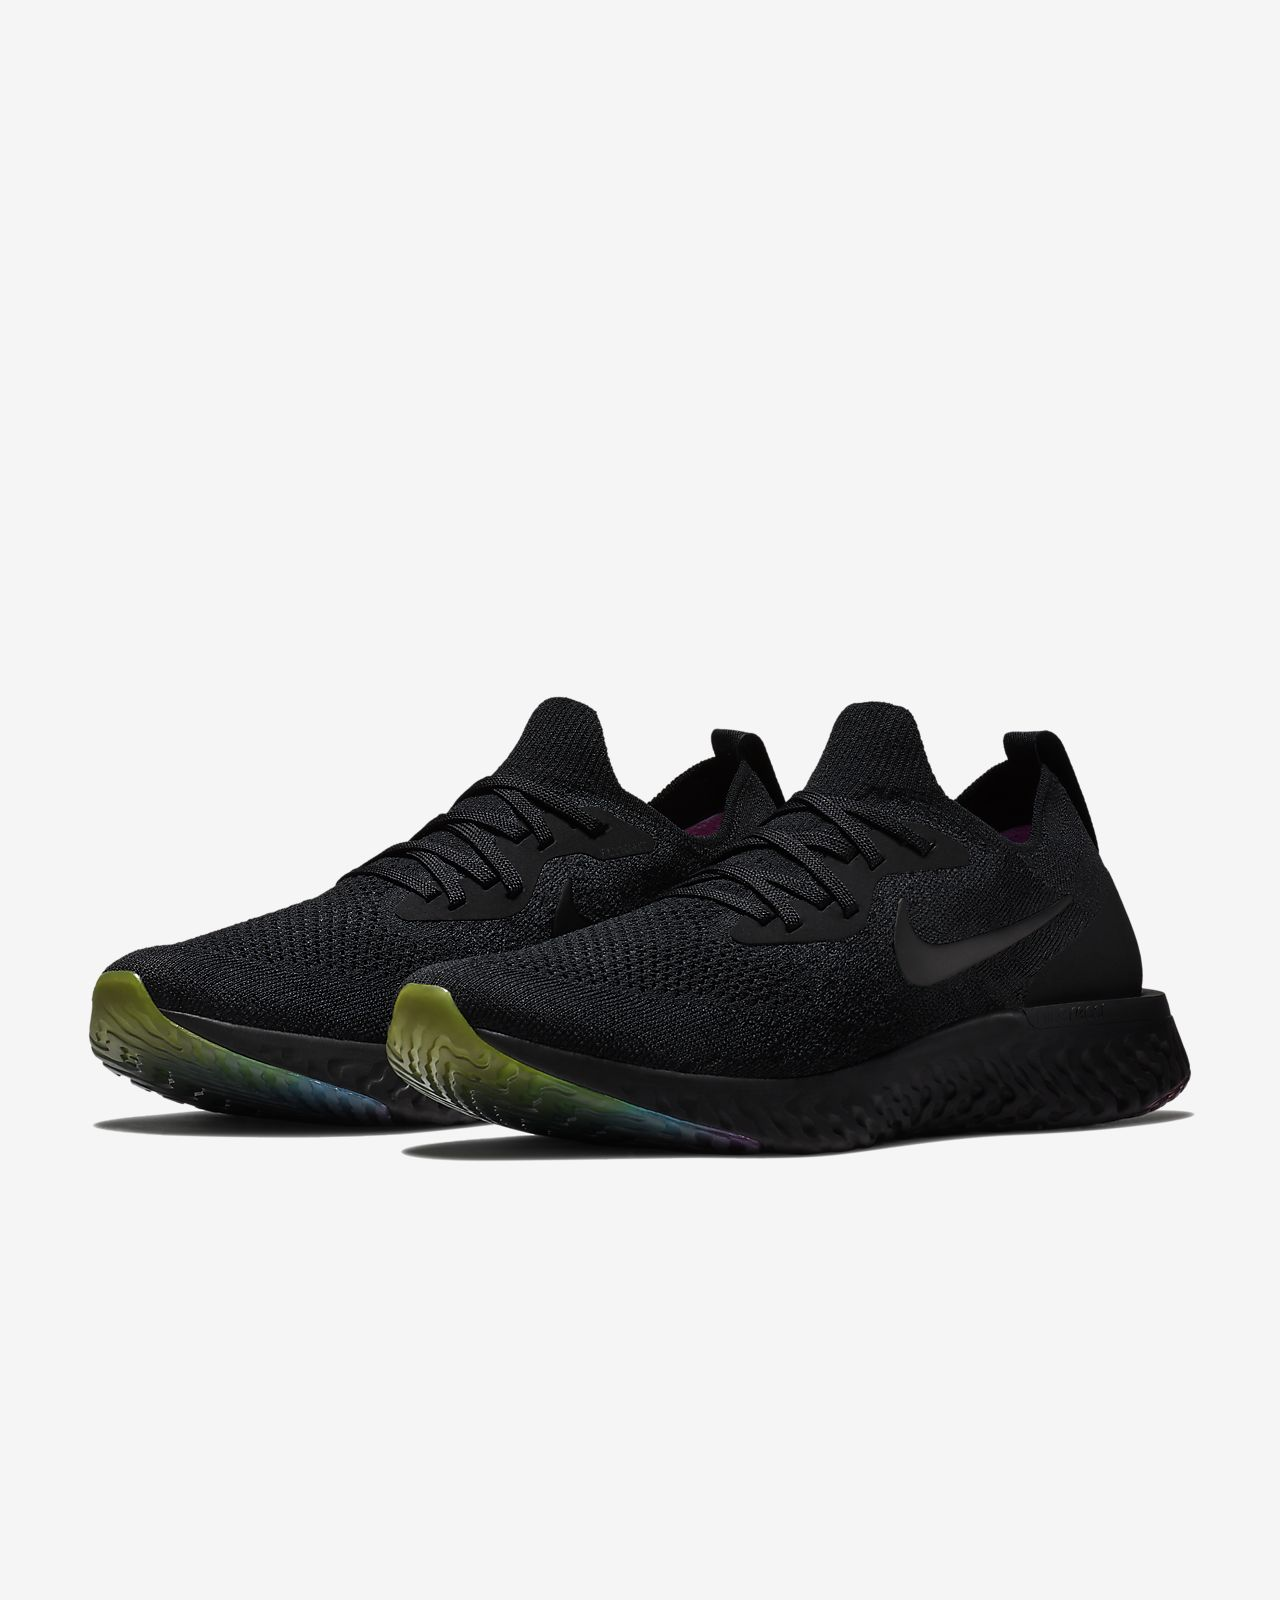 Nike basquette homme